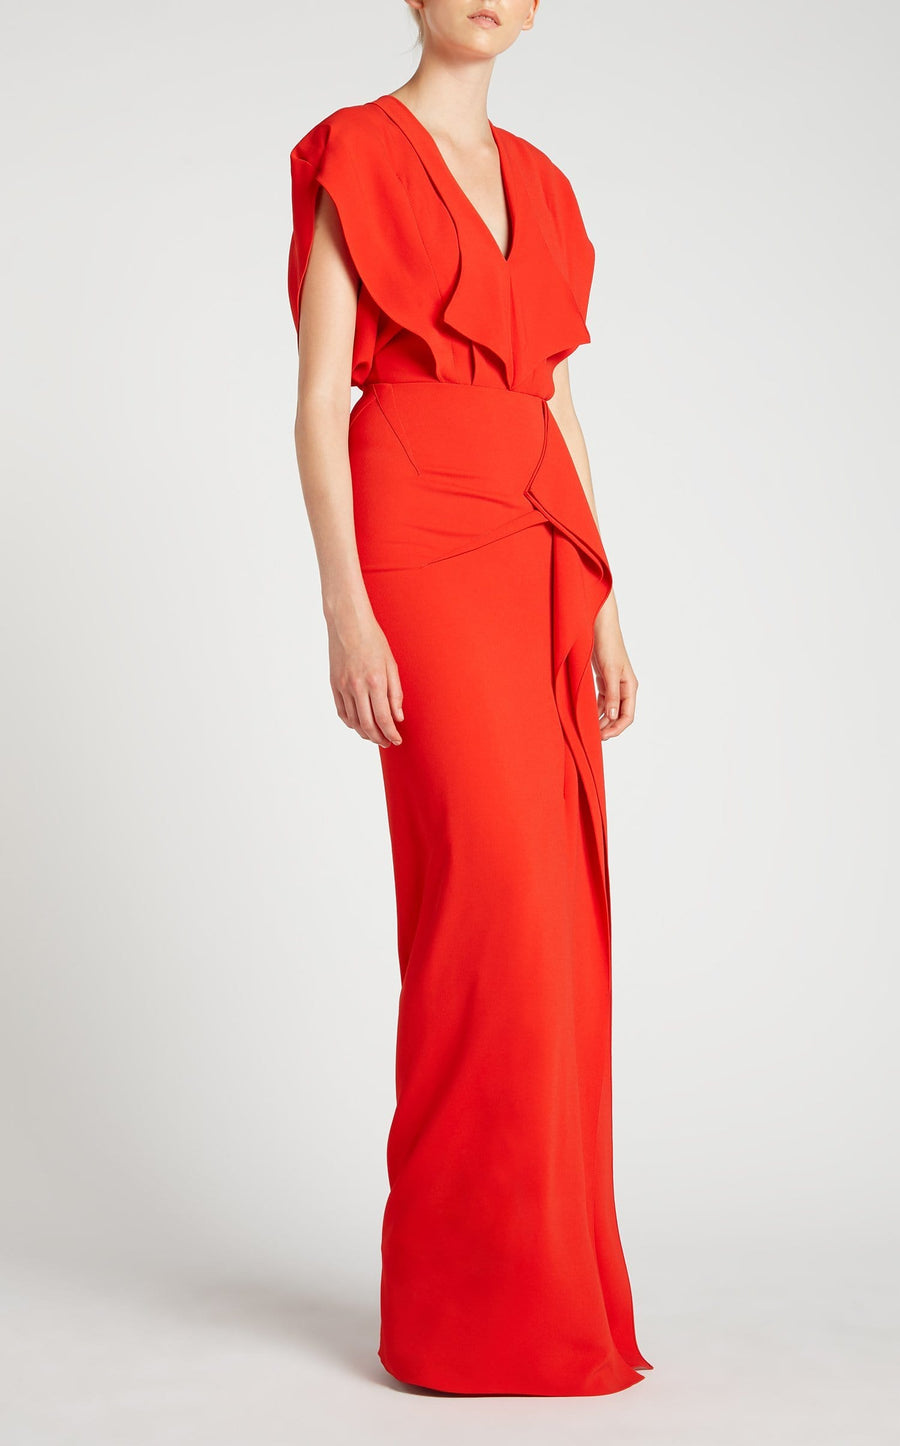 Lorre Gown In Poppy Red from Roland Mouret